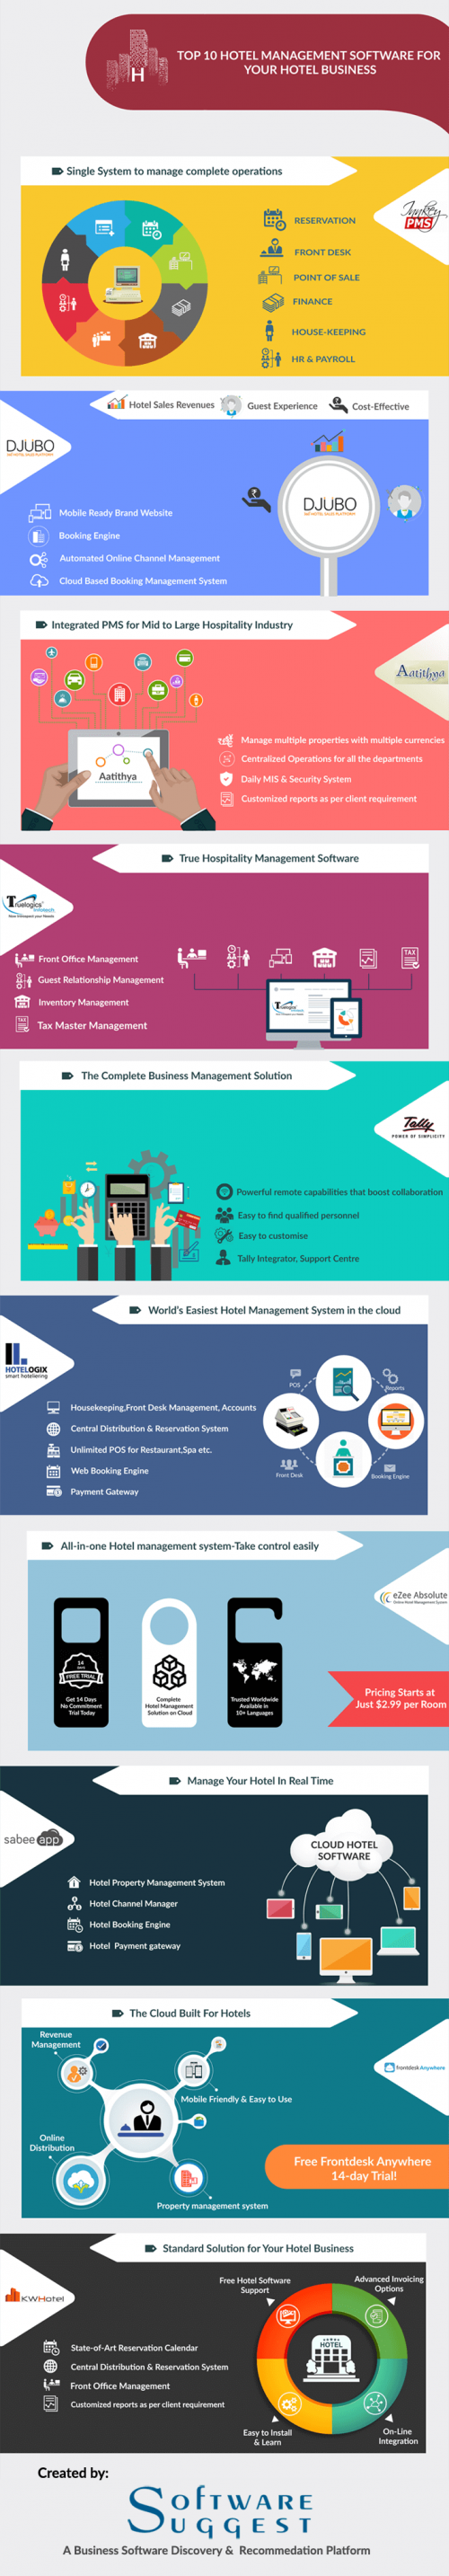 Hotel Management Software Infographic - SoftwareSuggest'